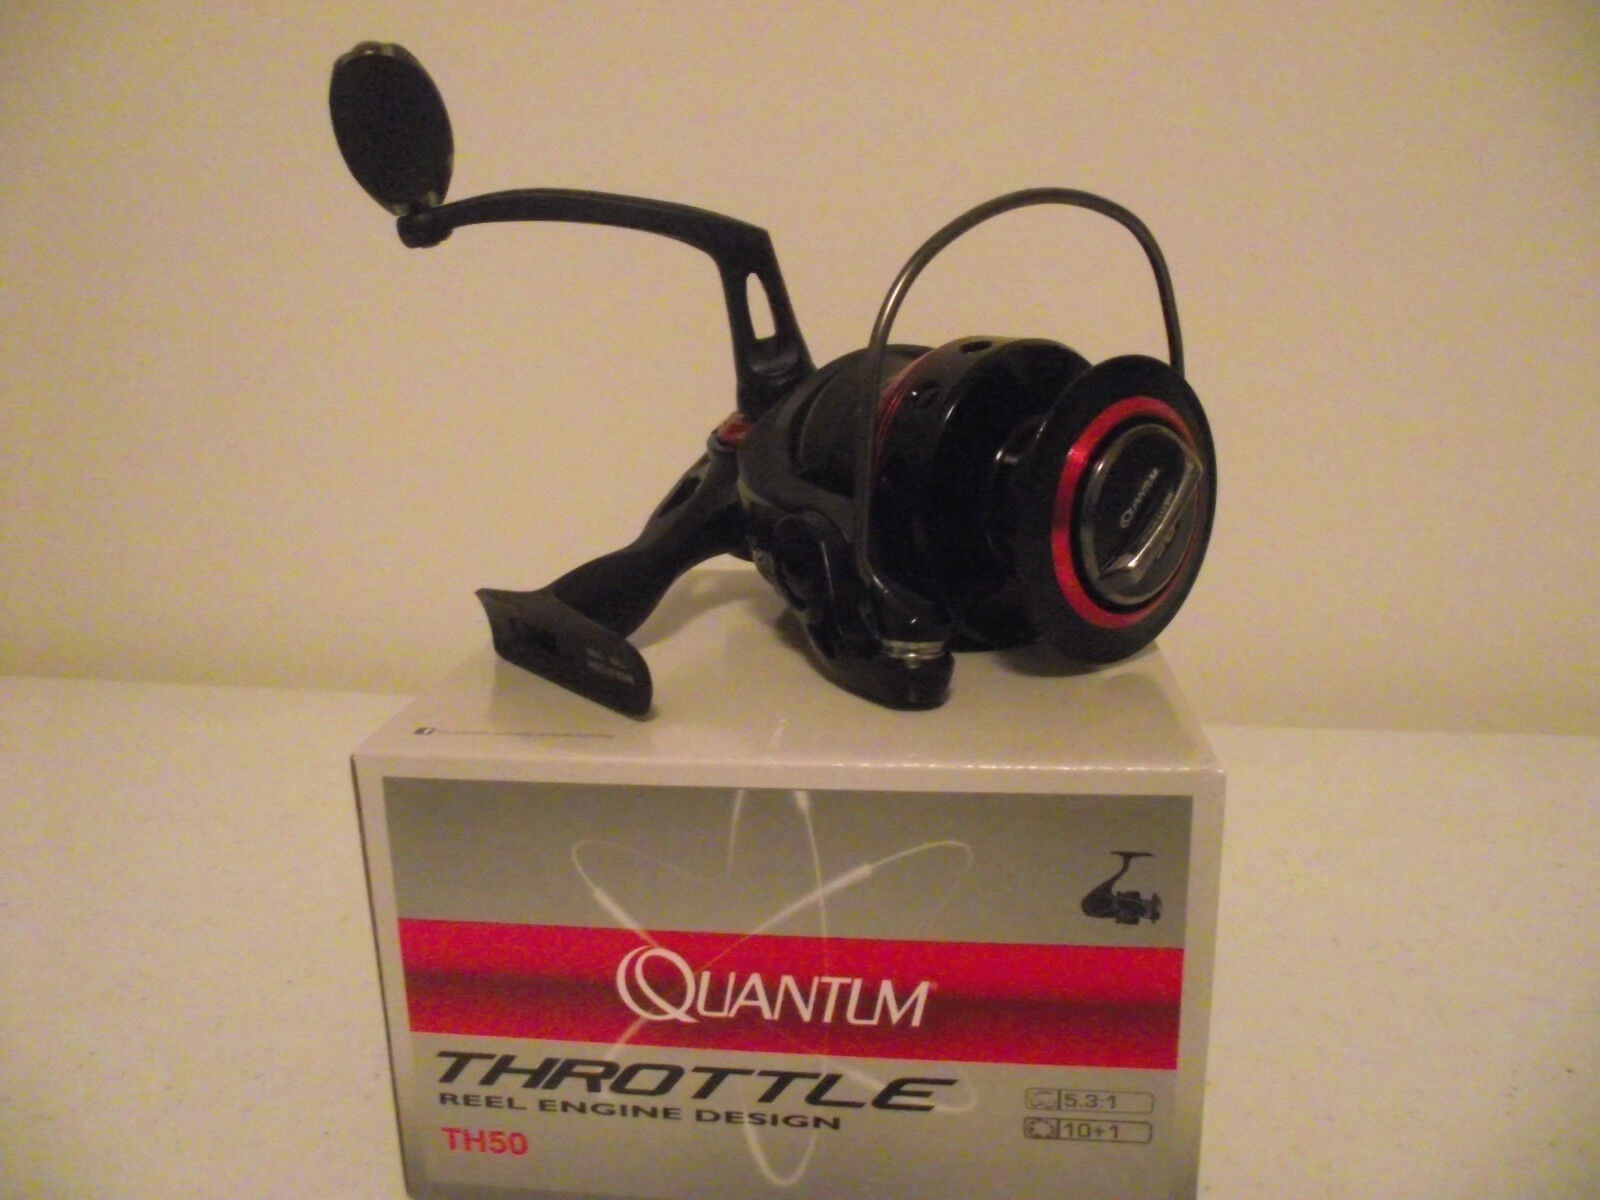 Quantum Thredtle TH50 Spinning Reel  New in Box